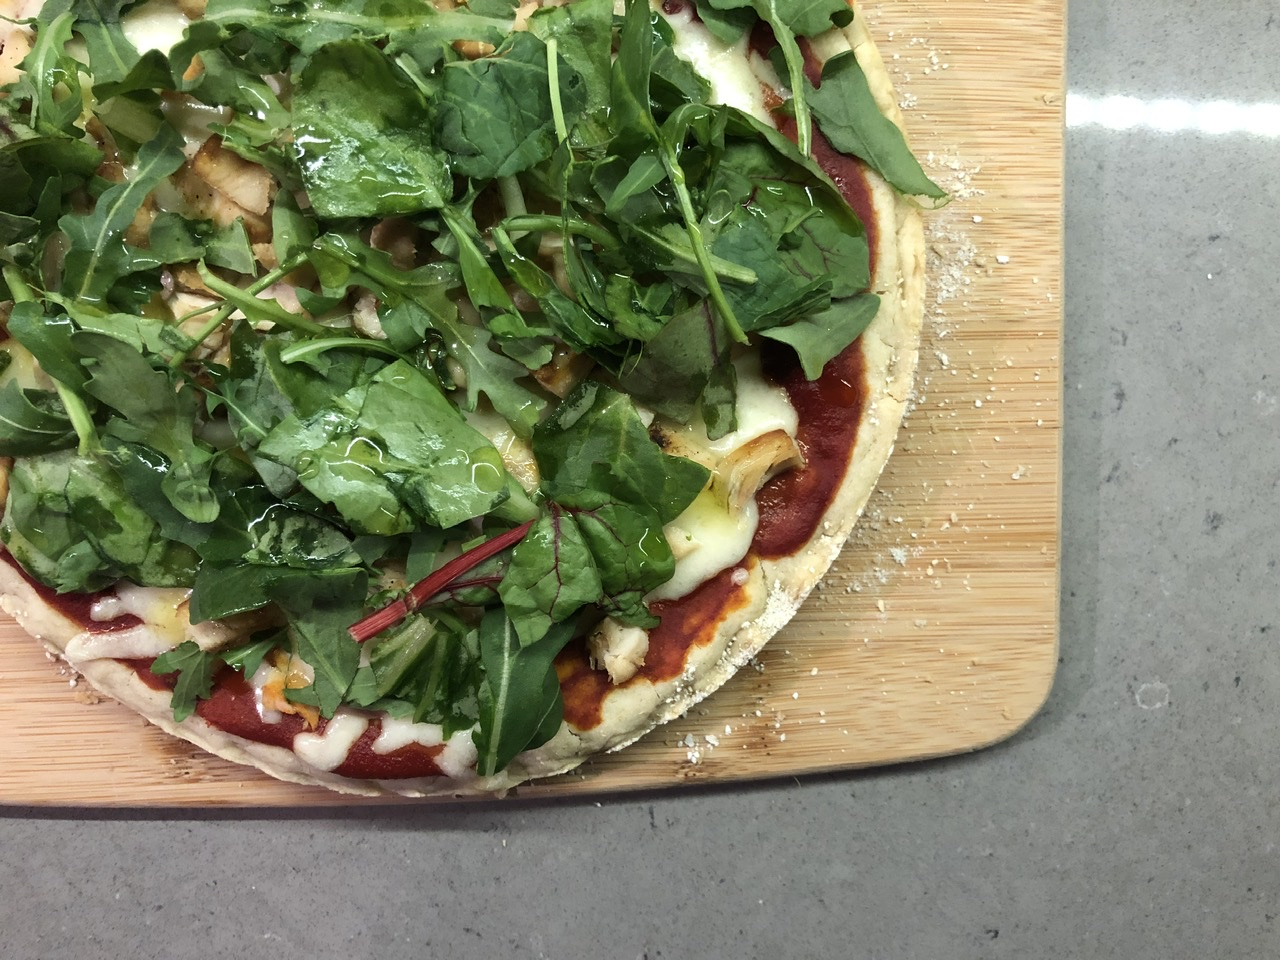 Top down photo of a pizza on a cutting board